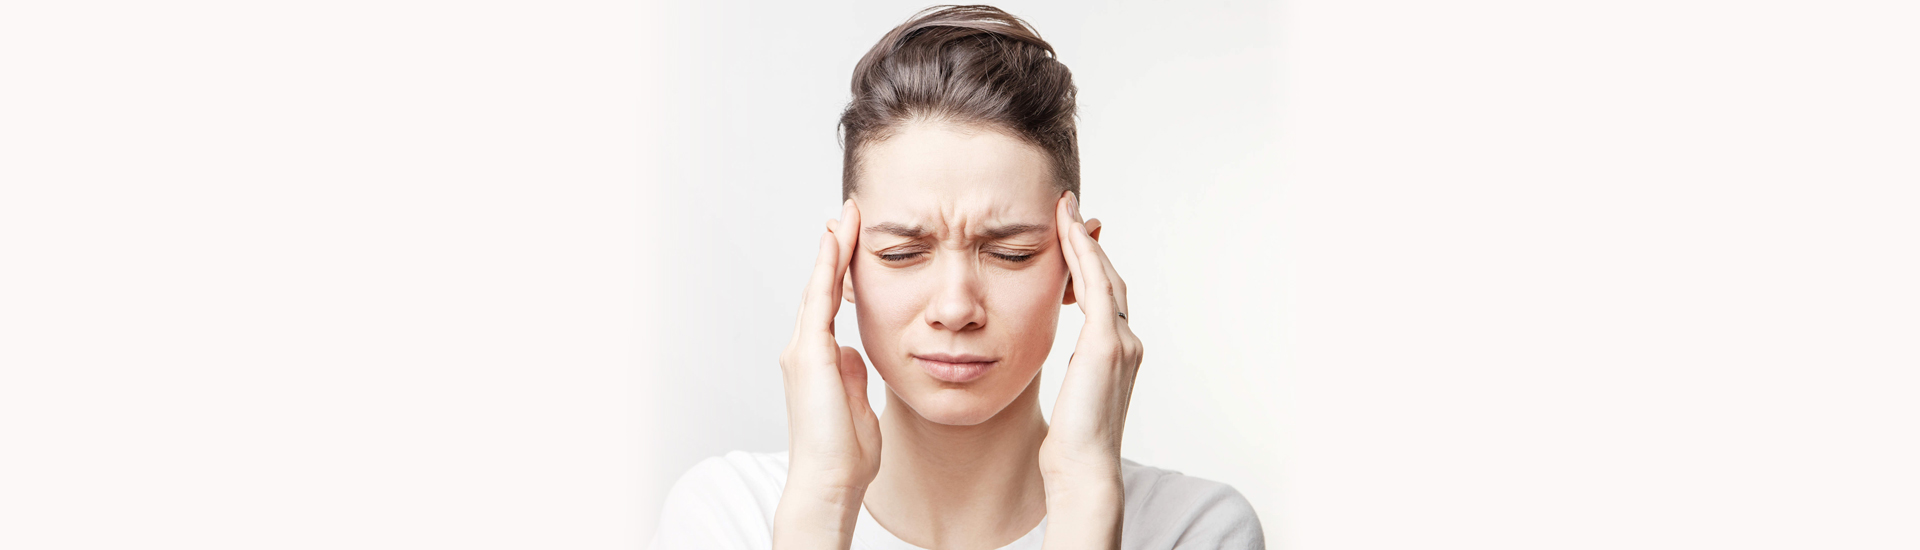 Why You Should Not Avoid Migraines and Headaches